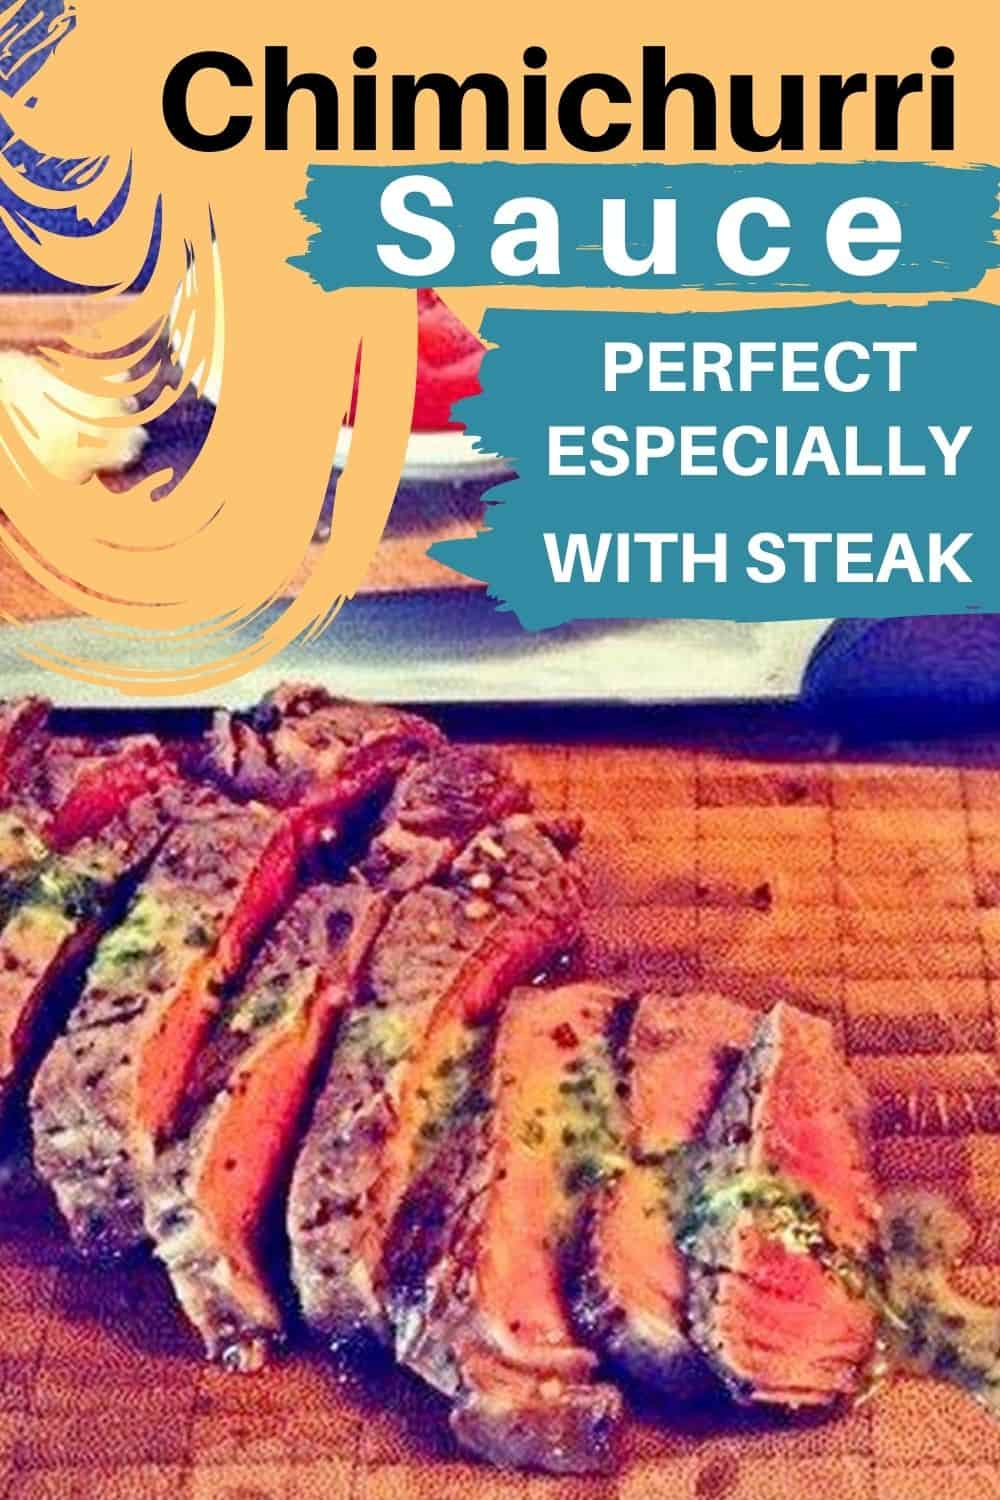 Slices of steak with Chimichurri Sauce